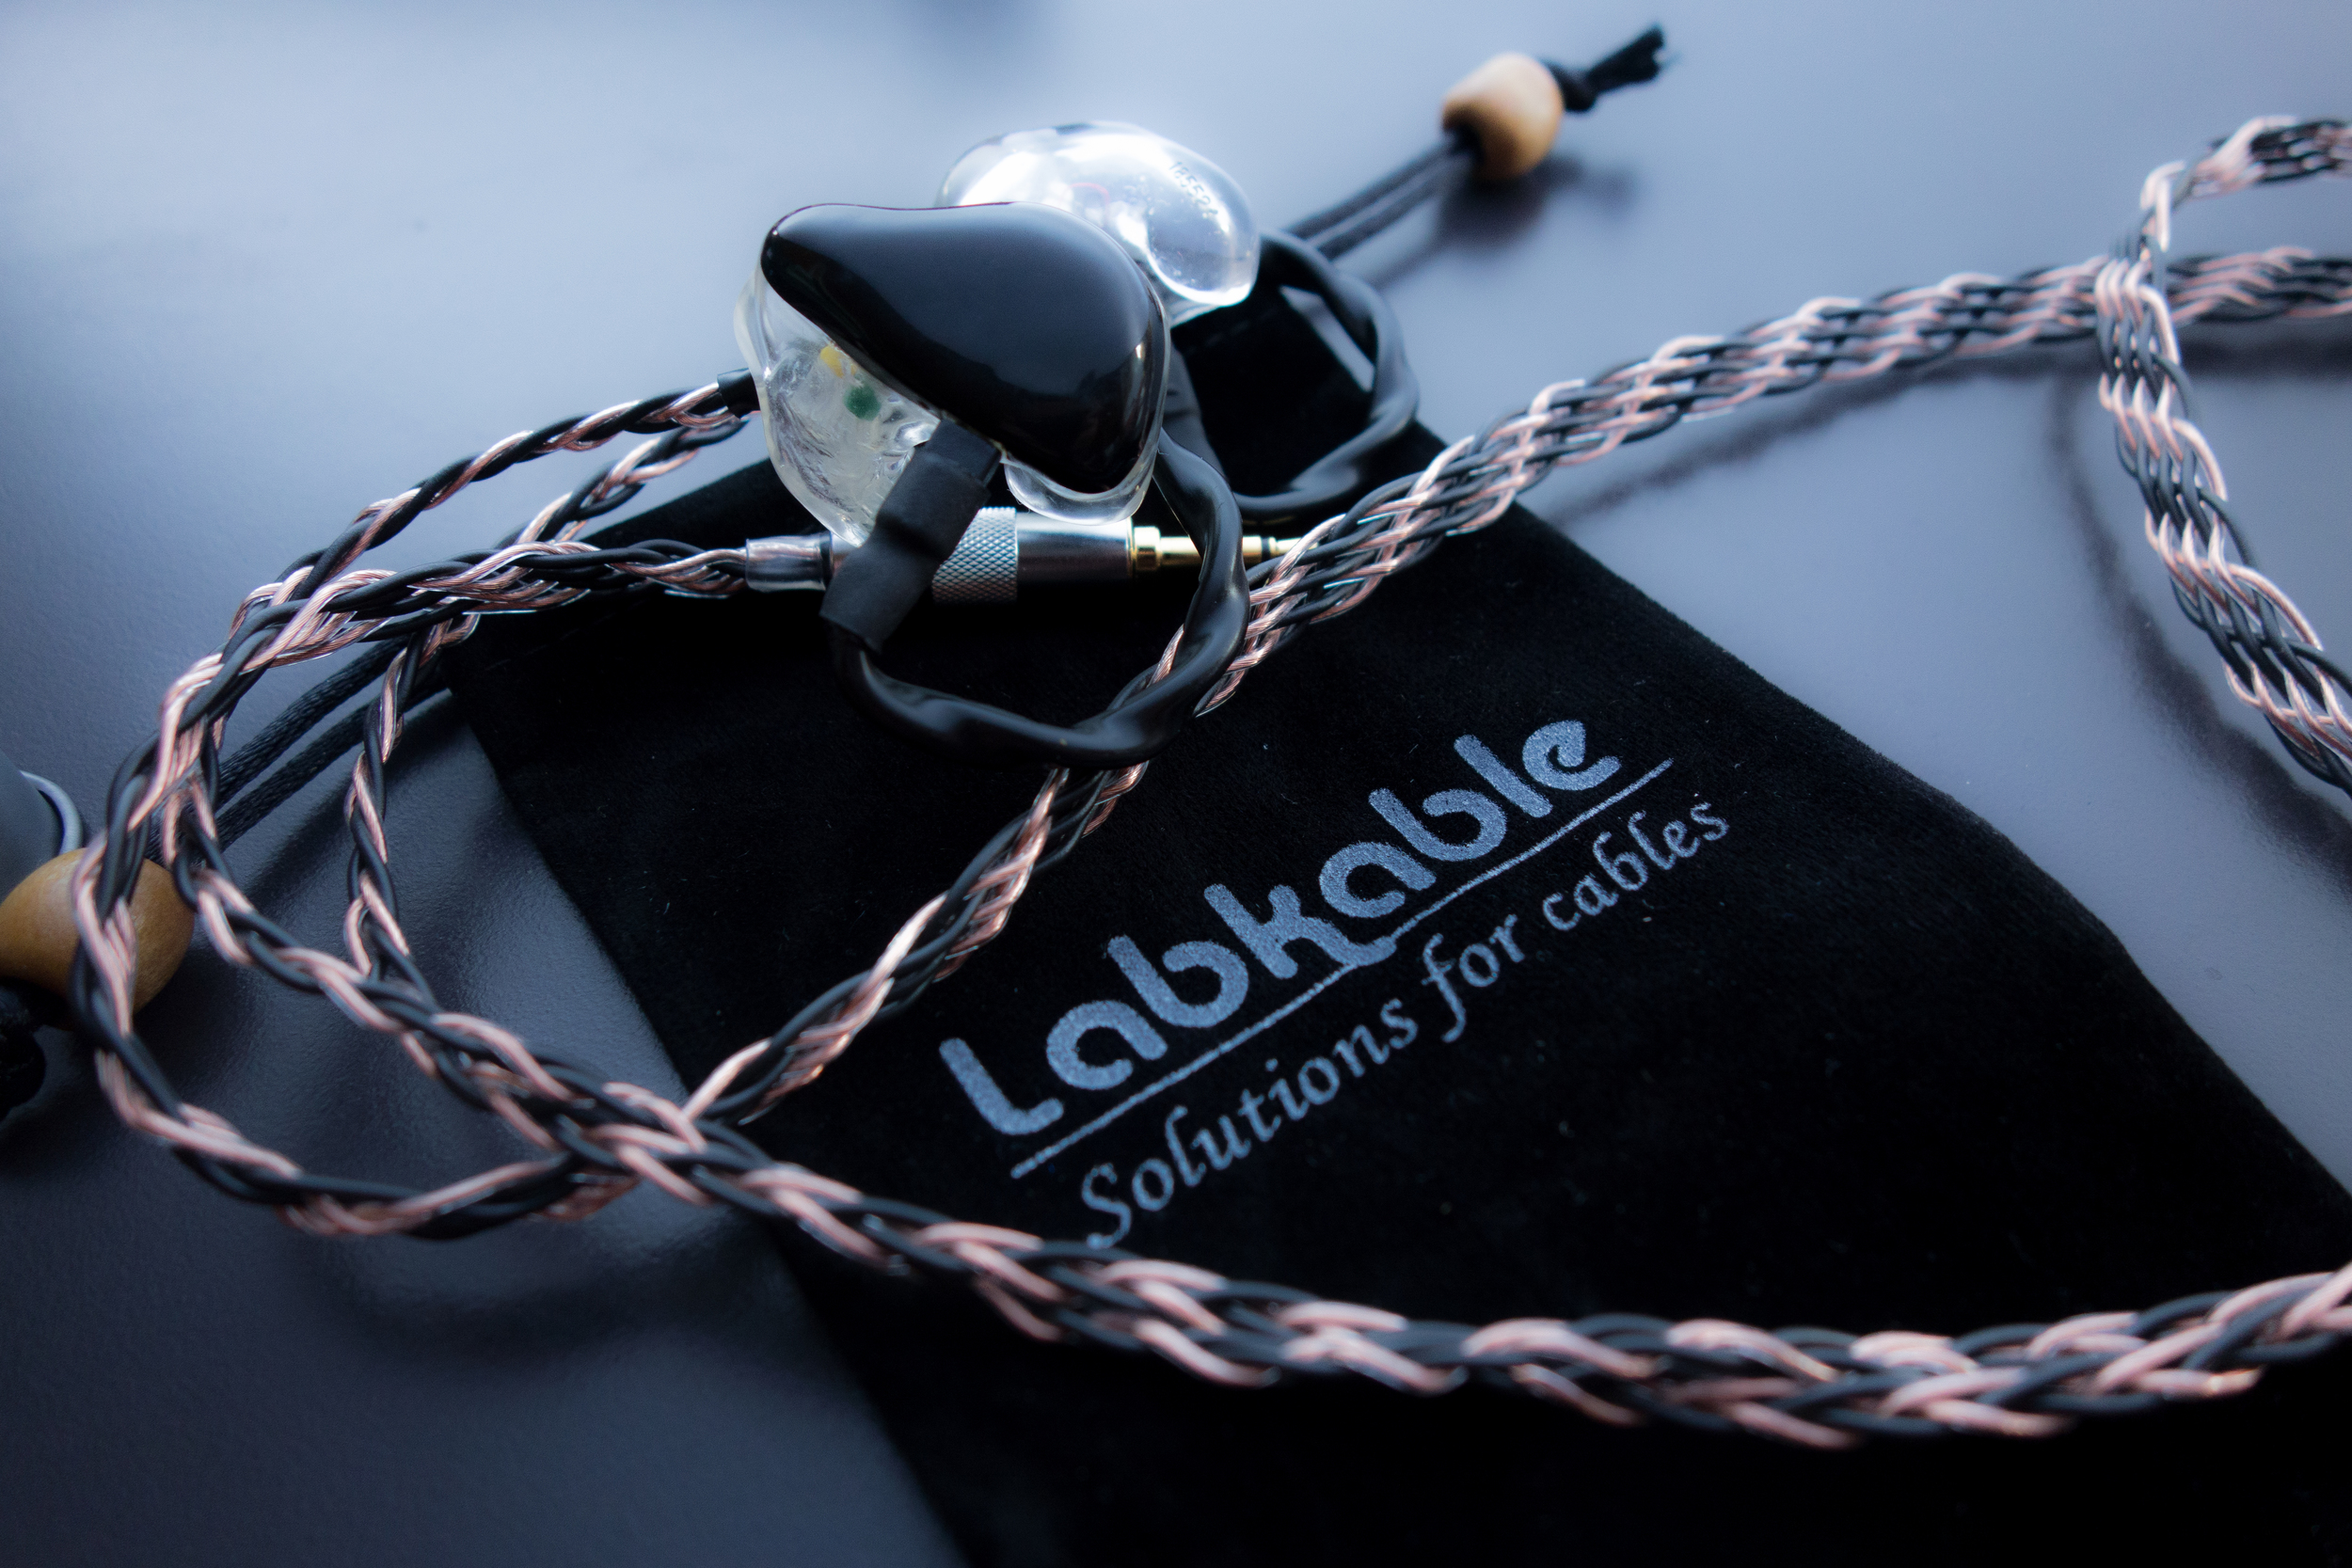 Labkable braided custom takumi cable review